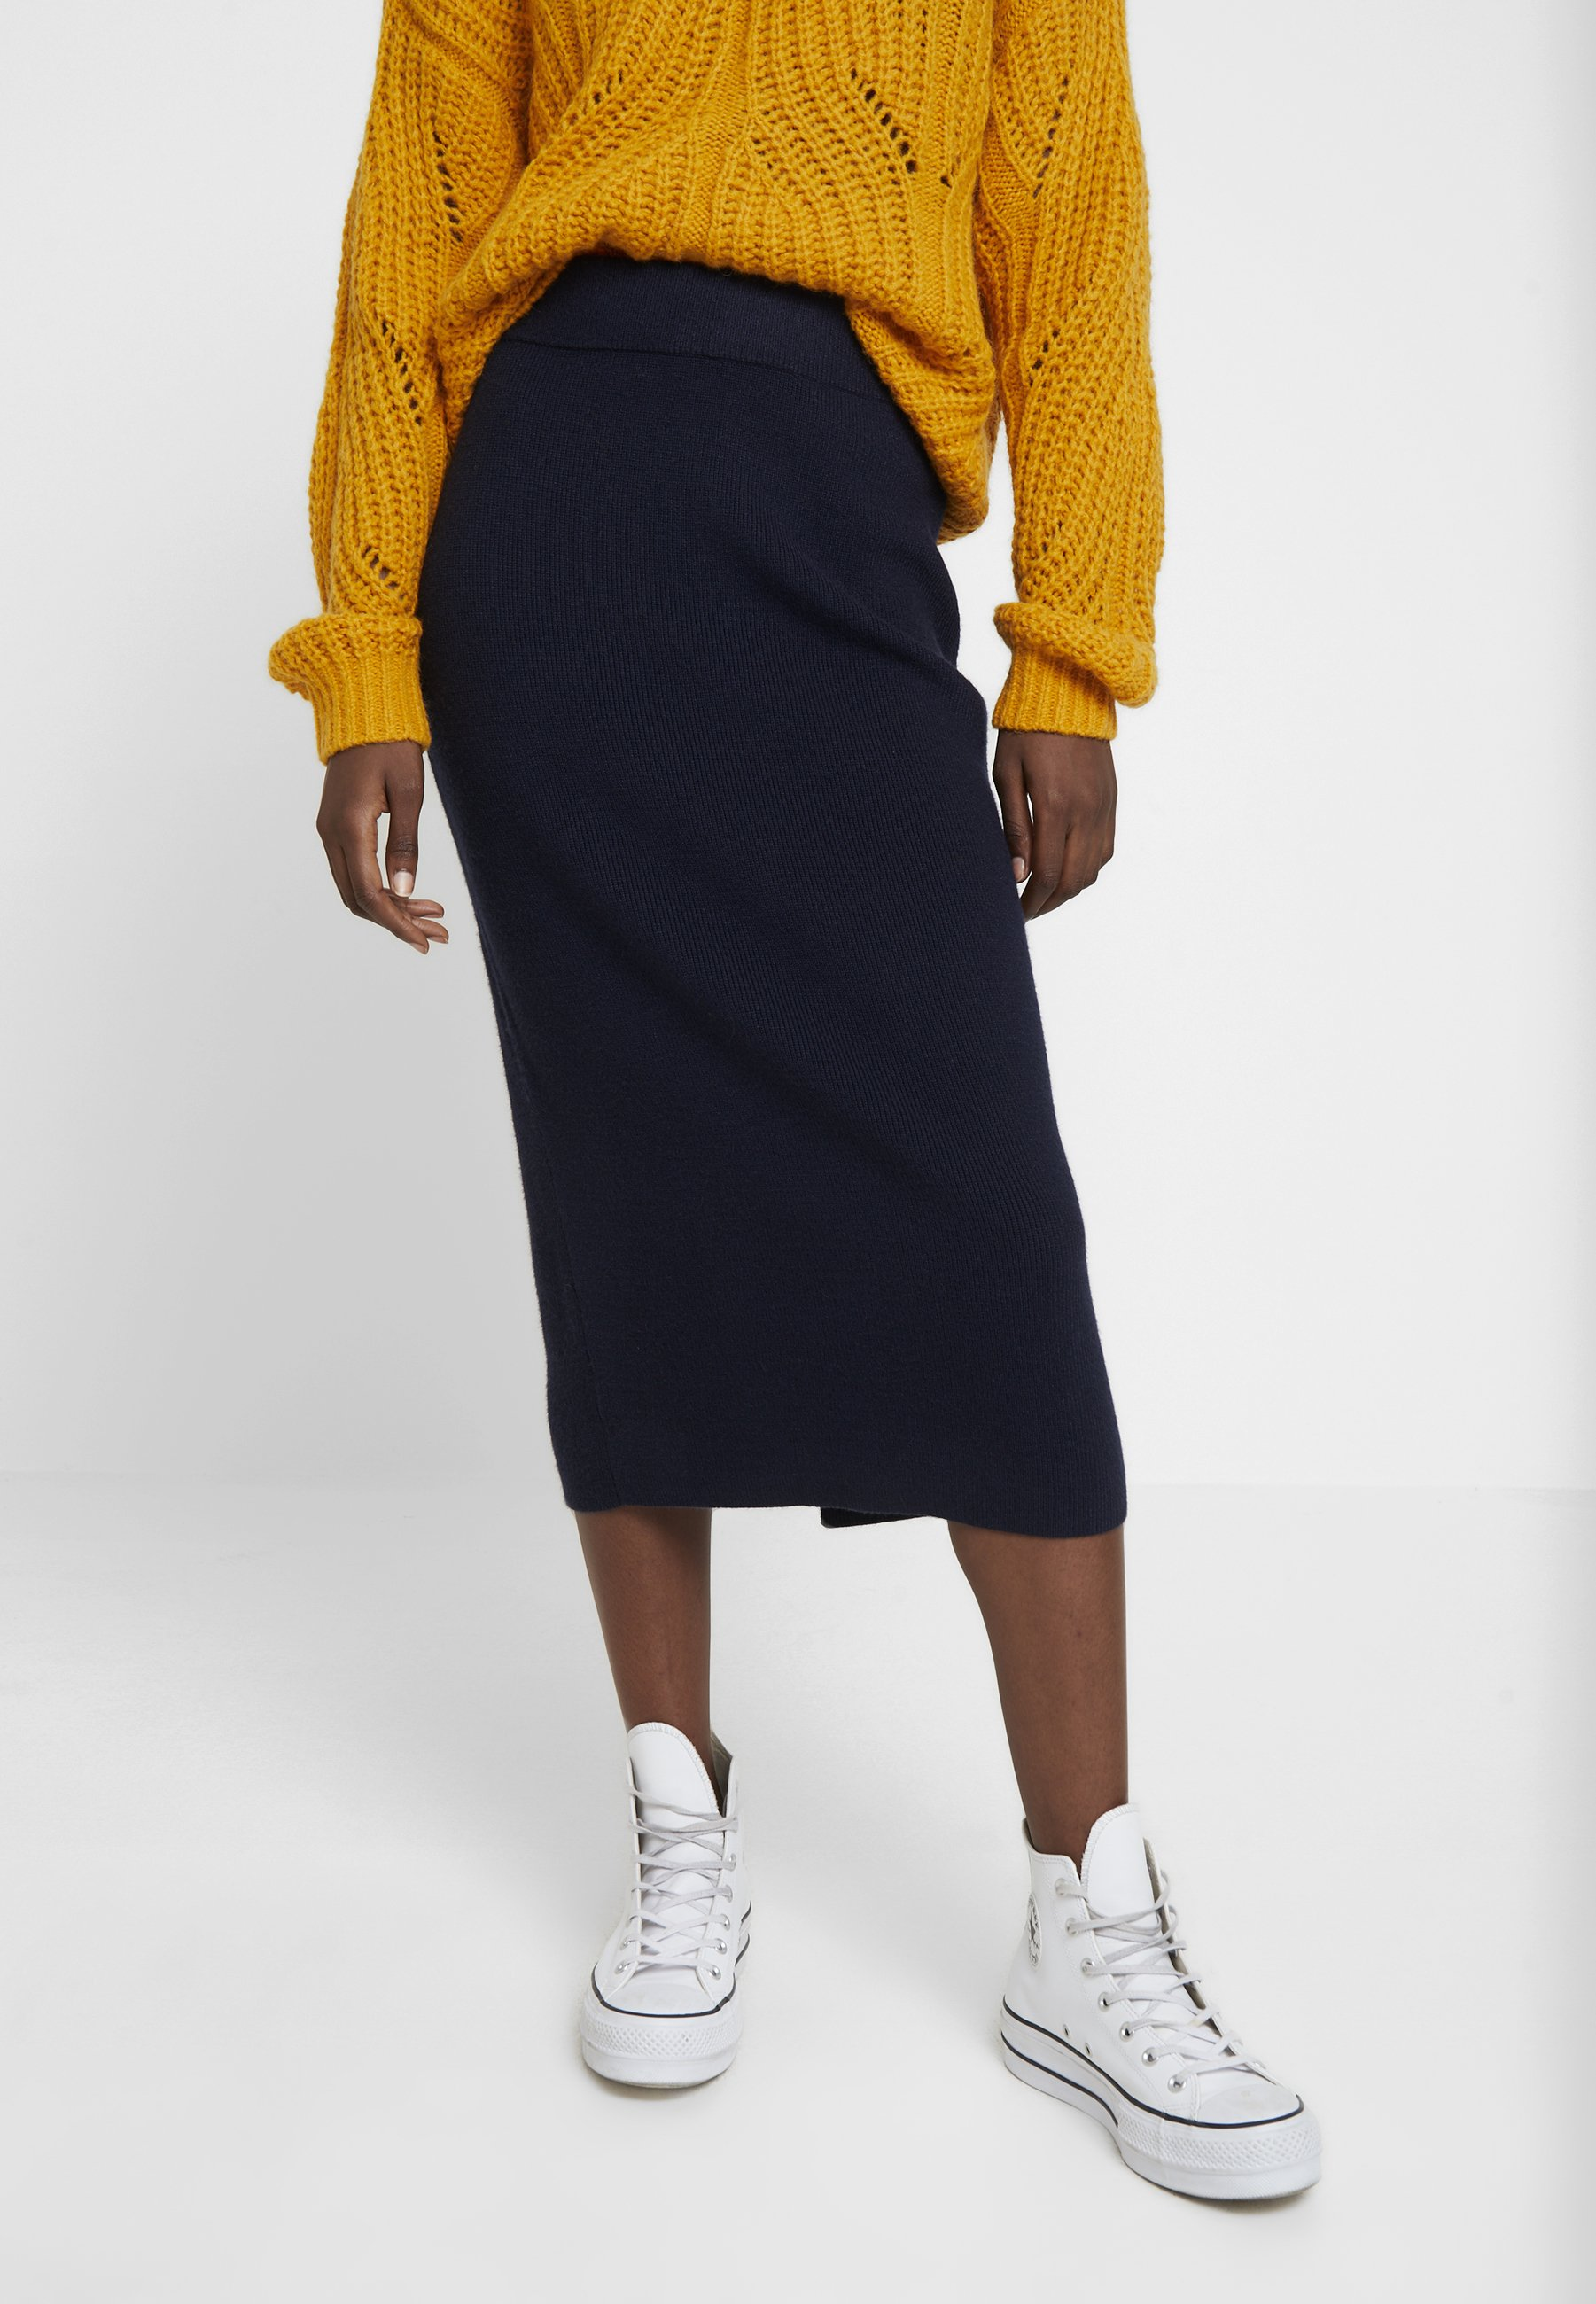 Tailor Blue Captain Tom Sky Crayon SkirtJupe vIYgb7f6y